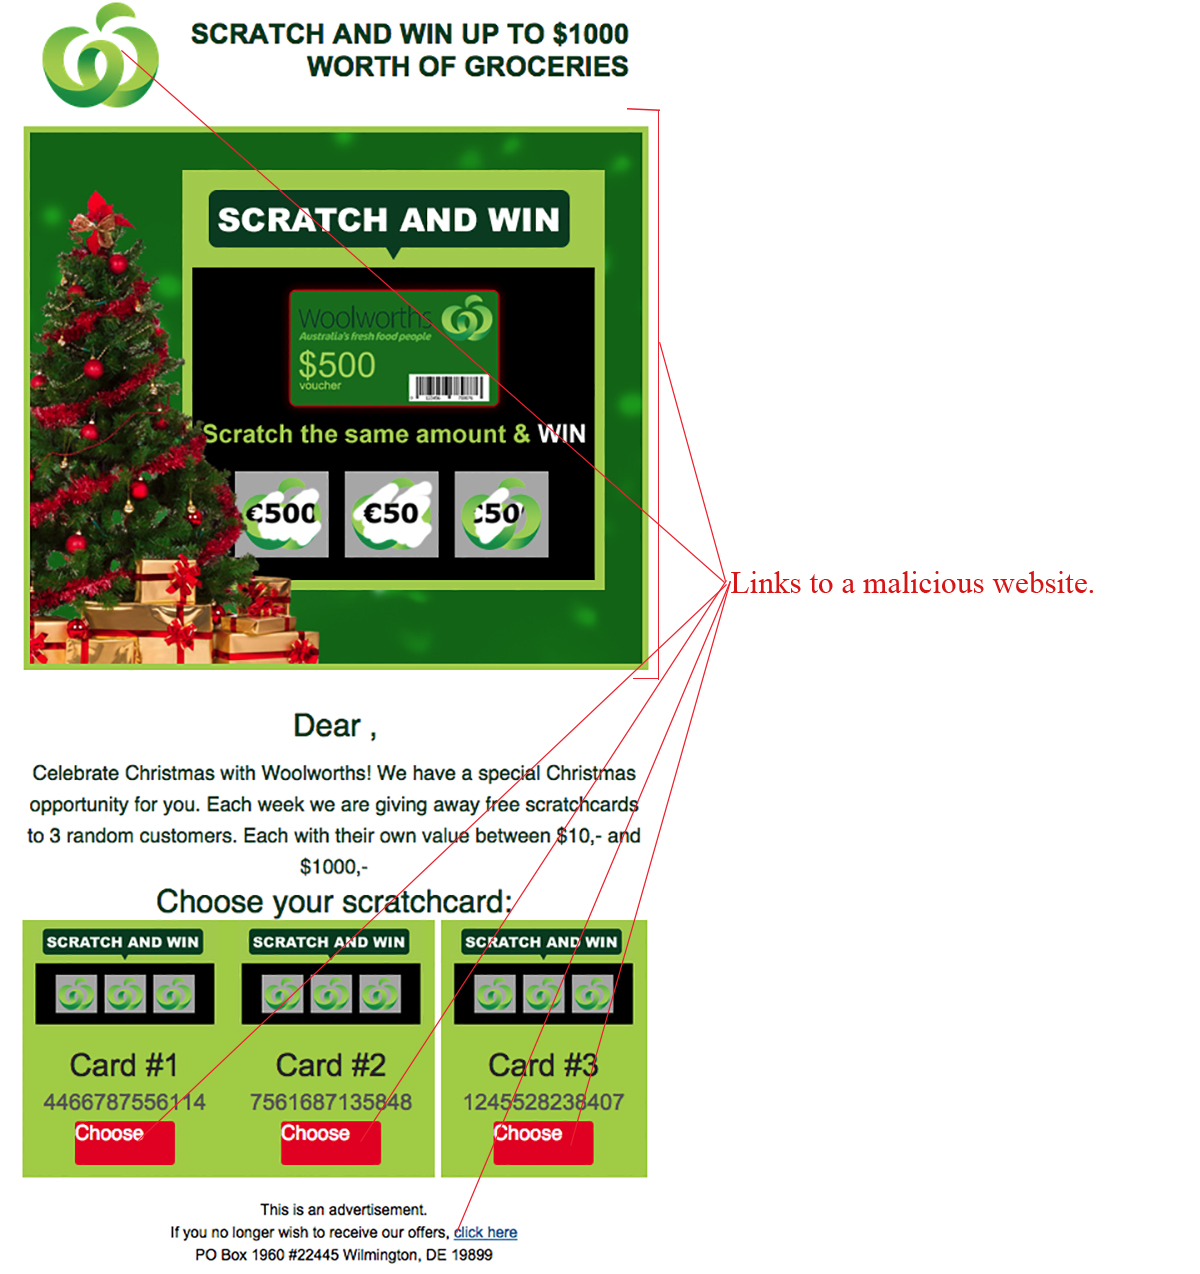 MailShark Woolworths Scratch and Win Groceries Scam